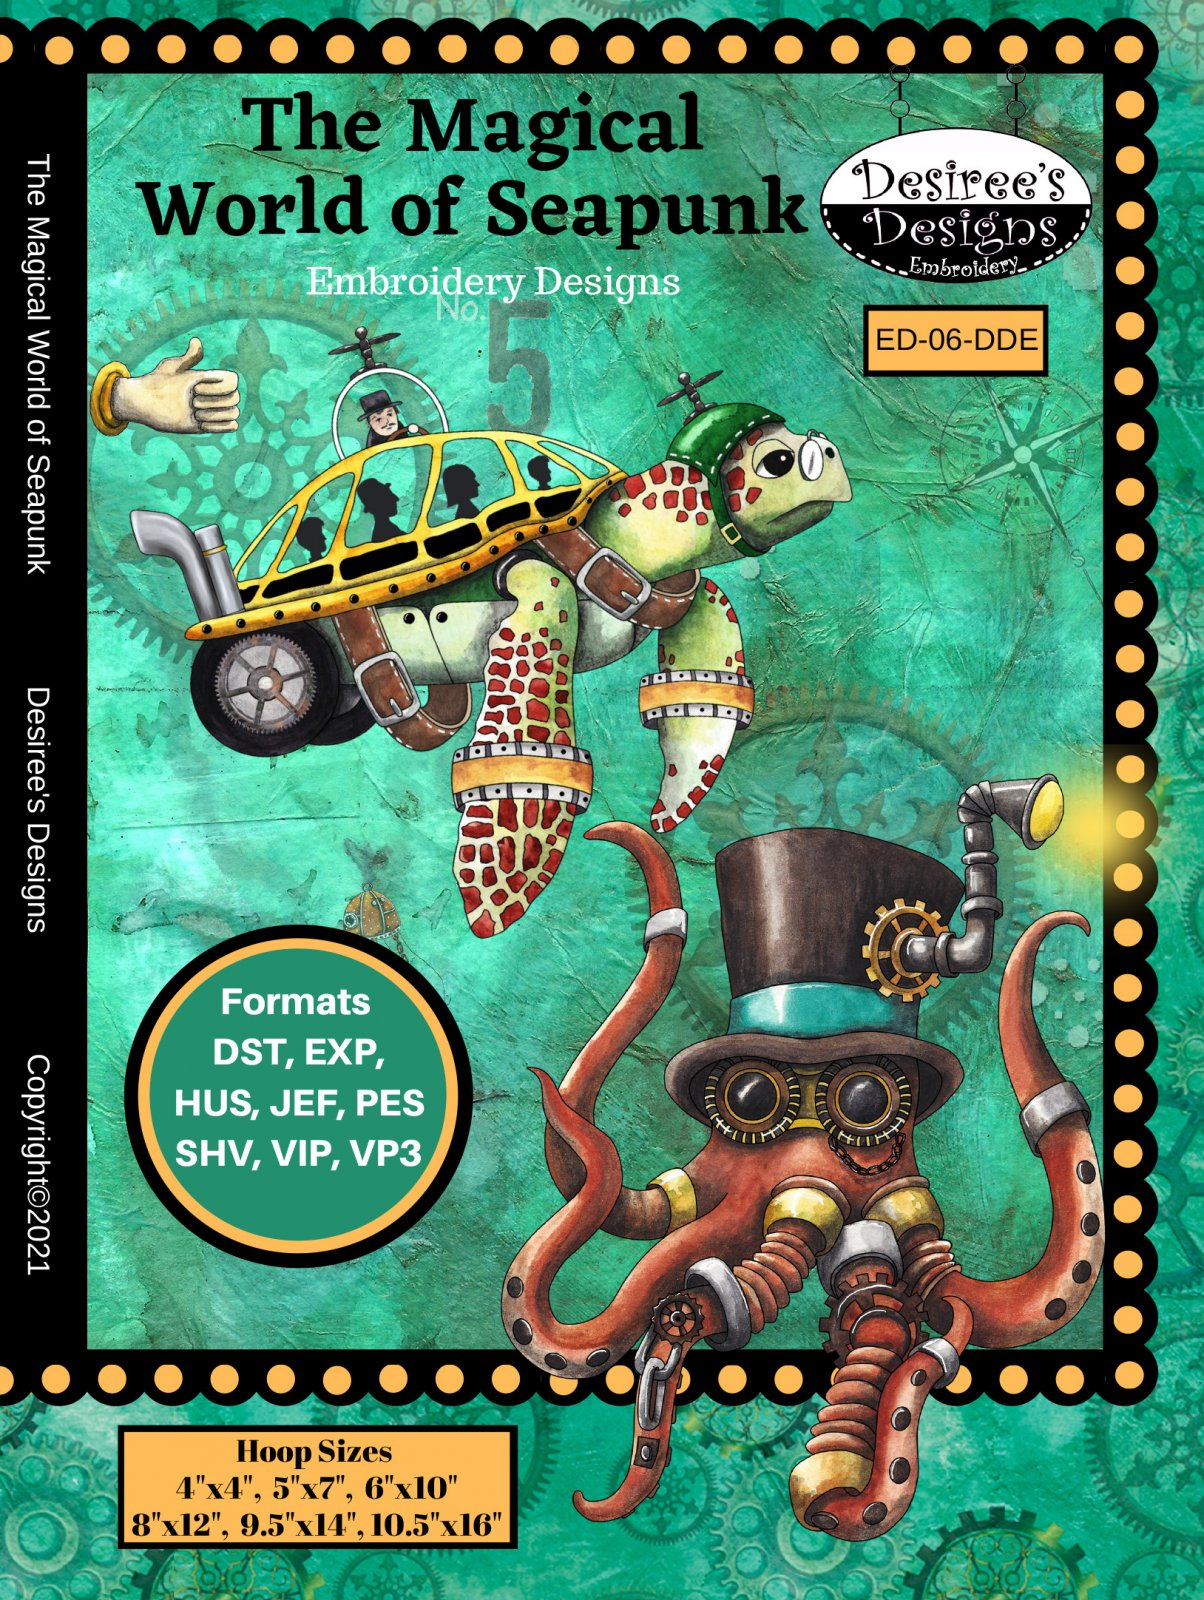 The Magical World of Aquatic Seapunkery Embroidery Download only (ED-06-DDE-E)